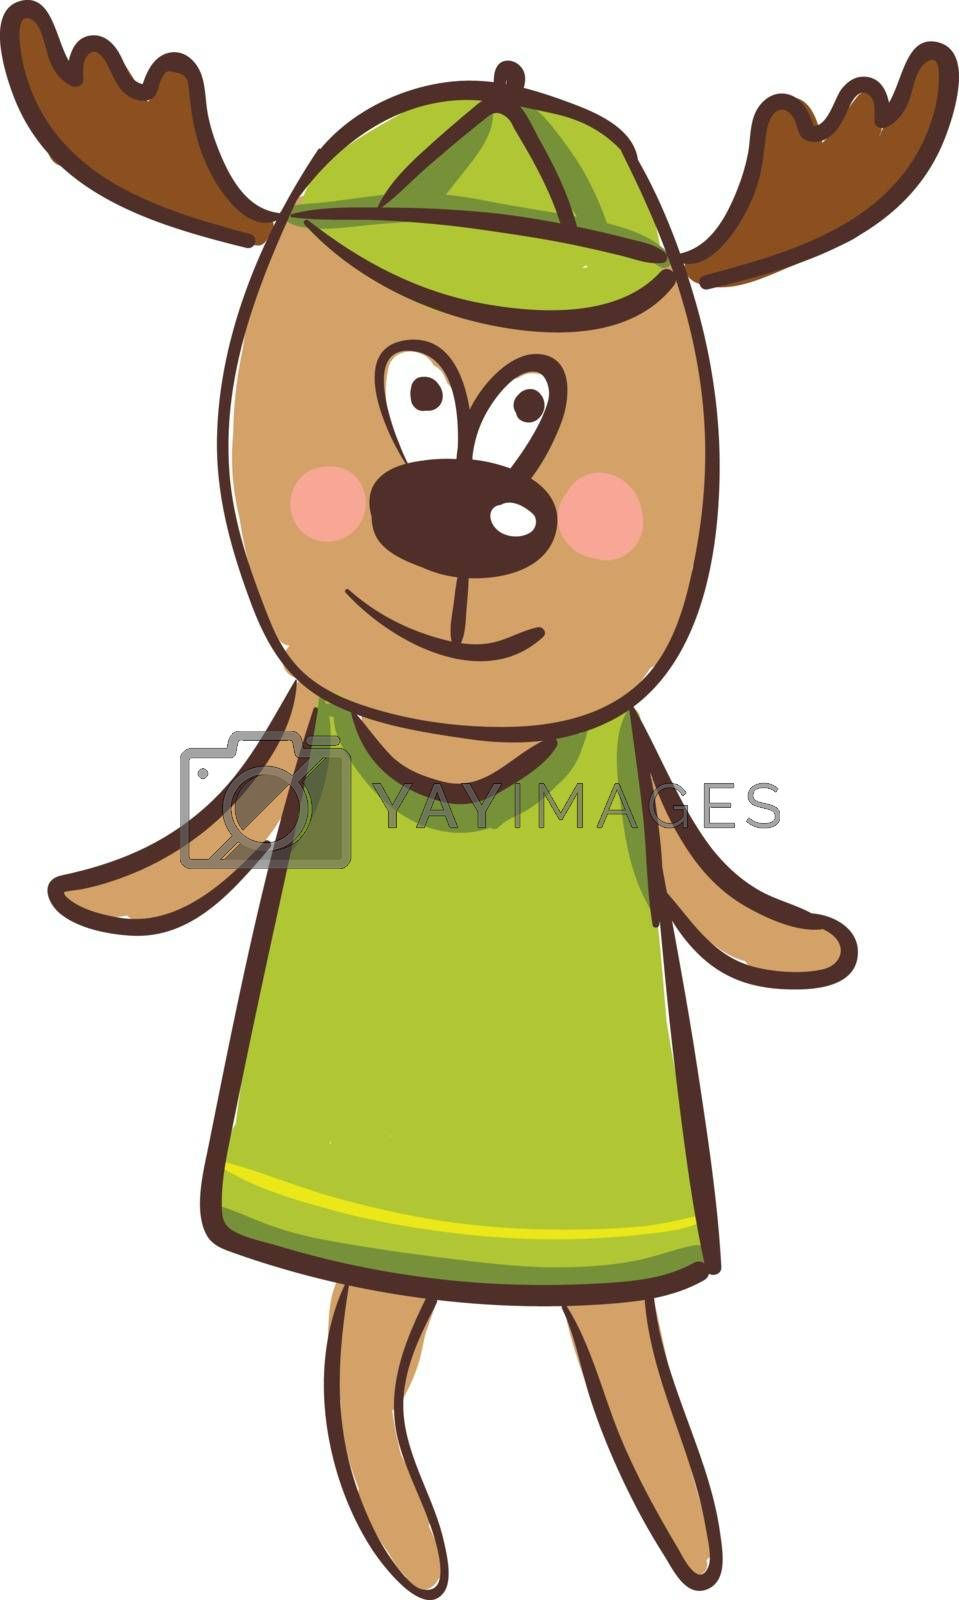 Royalty free image of Cartoon funny happy deer vector or color illustration by Morphart